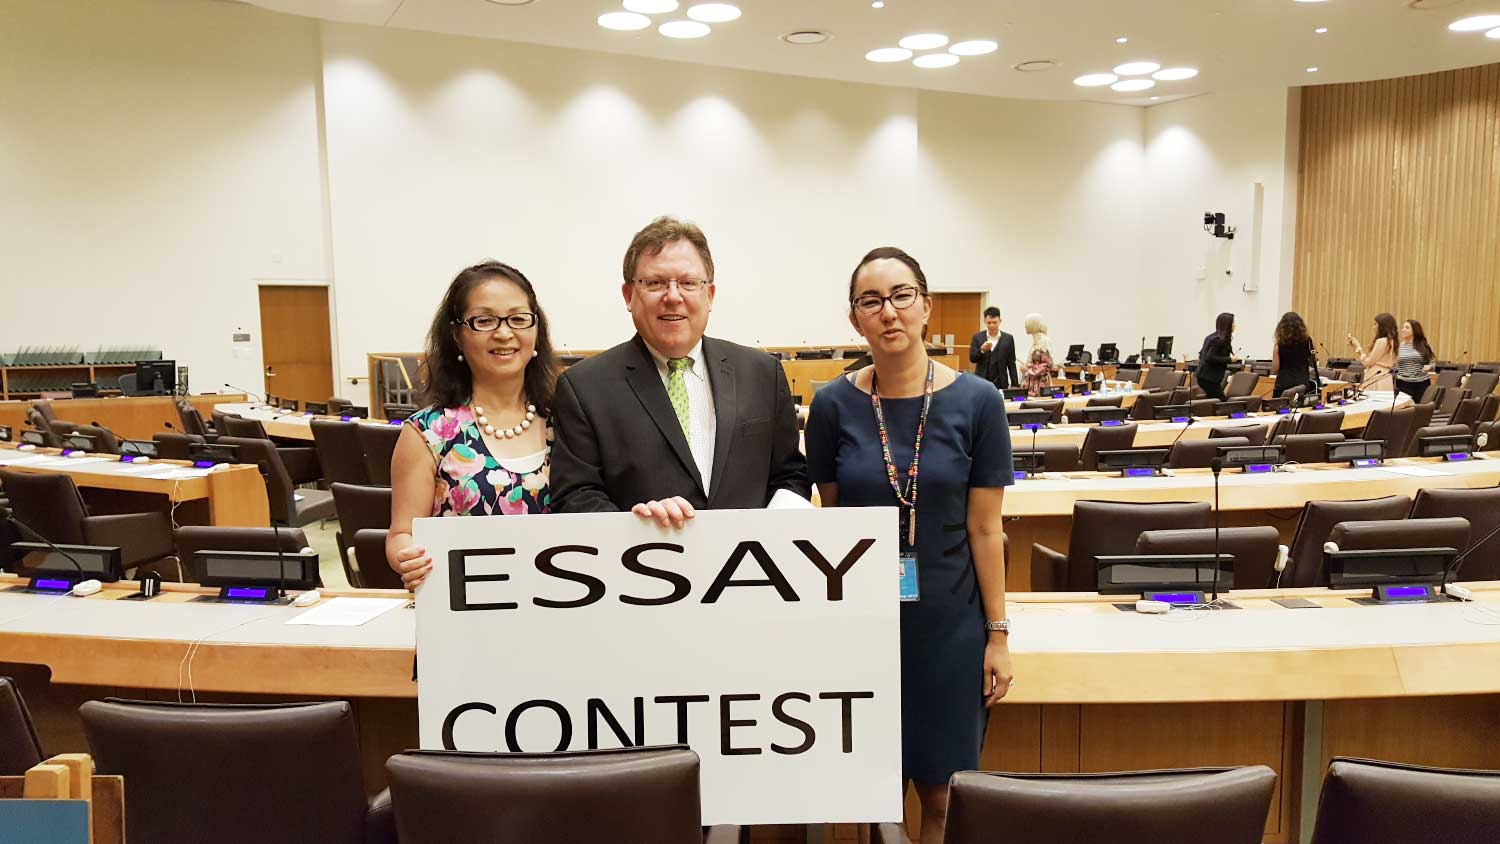 the institute for research on unlimited love youth essays at the un un essay contest photo